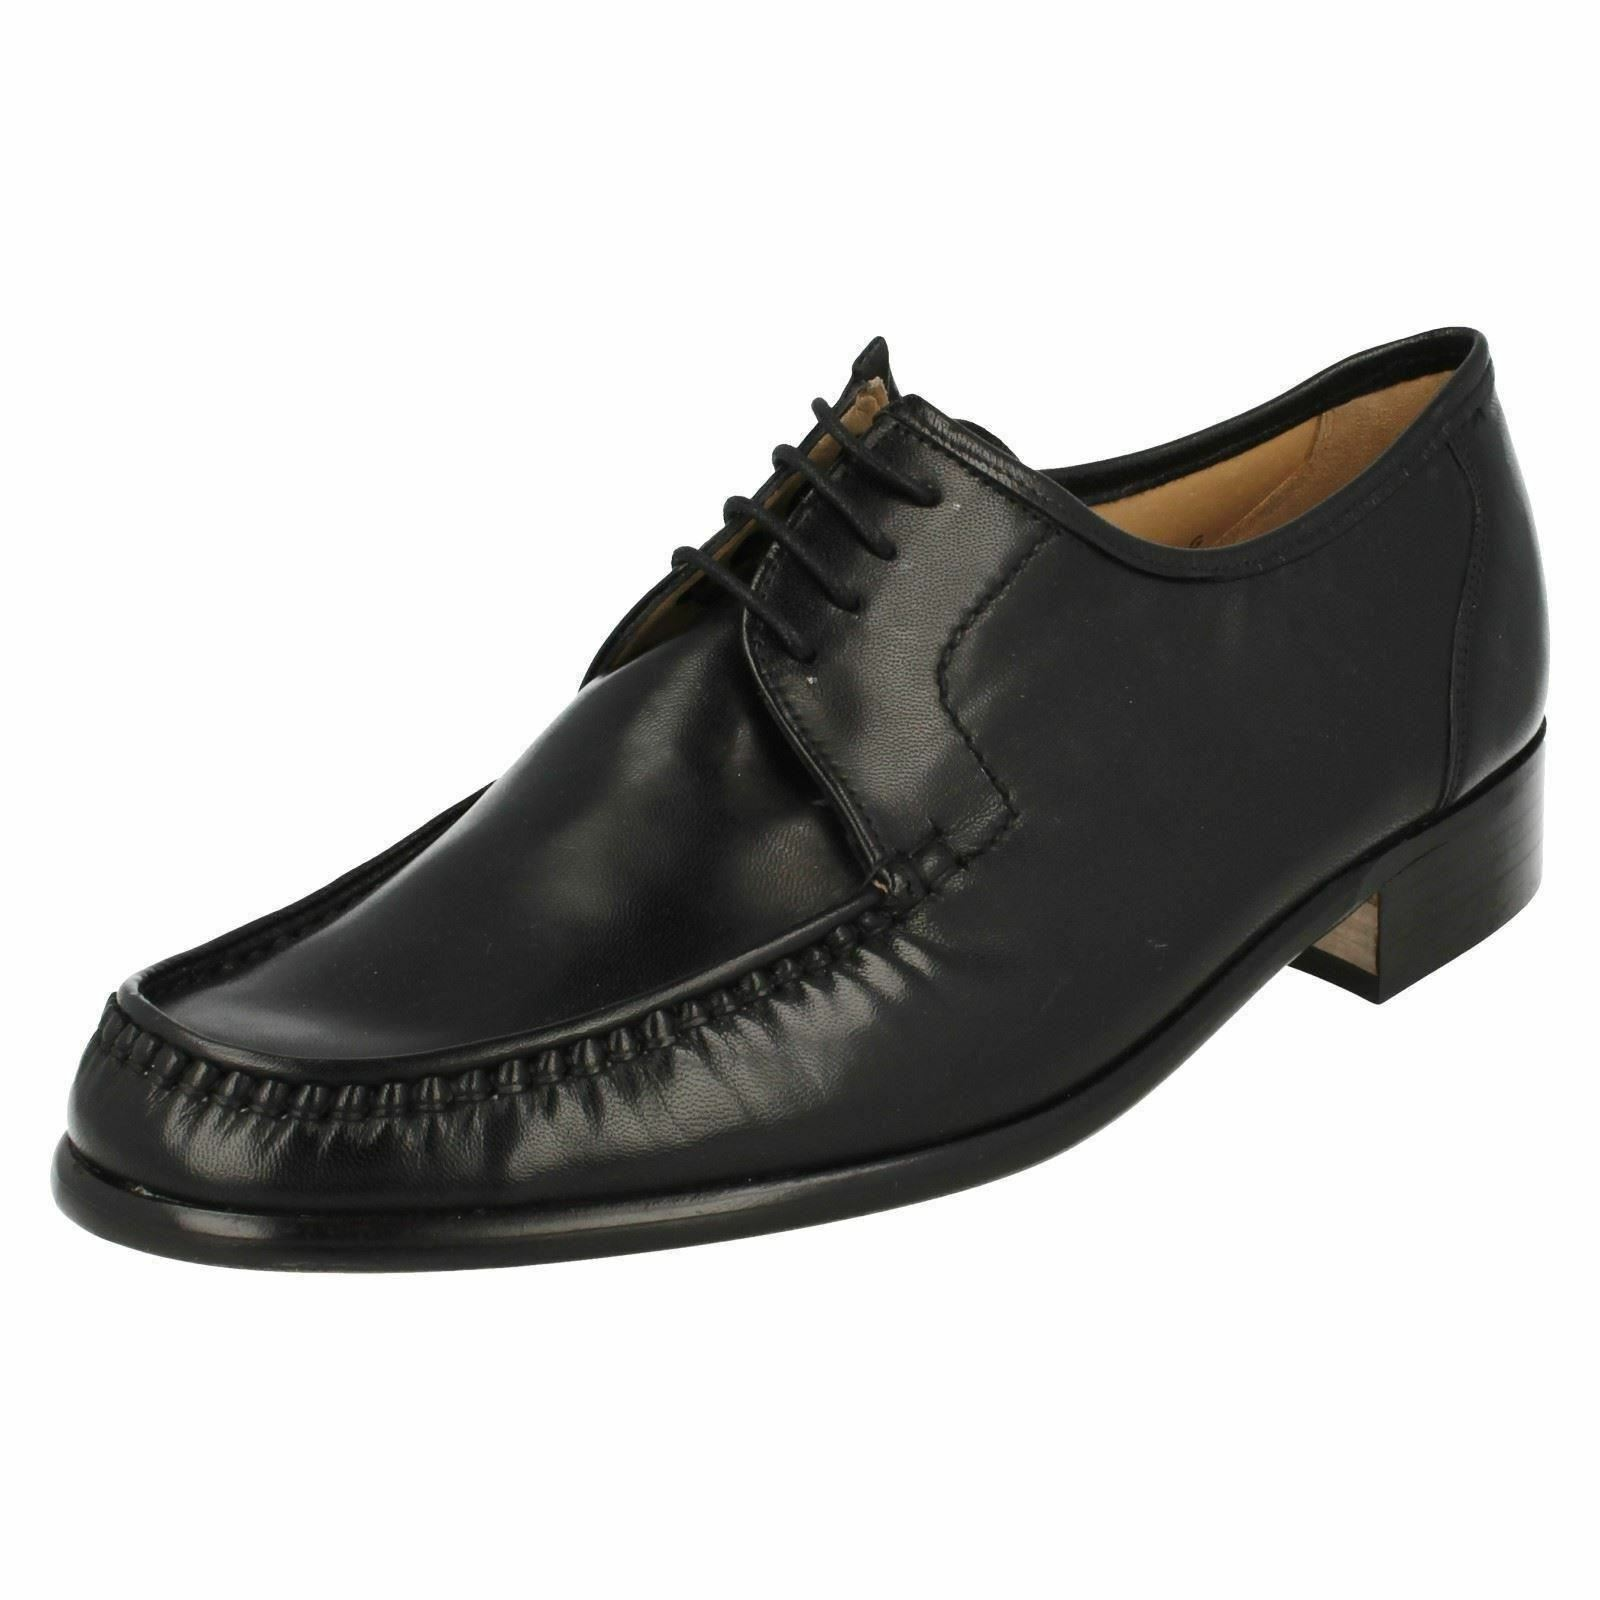 GRENSON MENS BLACK LEATHER UPPER AND SOLE LACE EP MOCCASIN SHOE